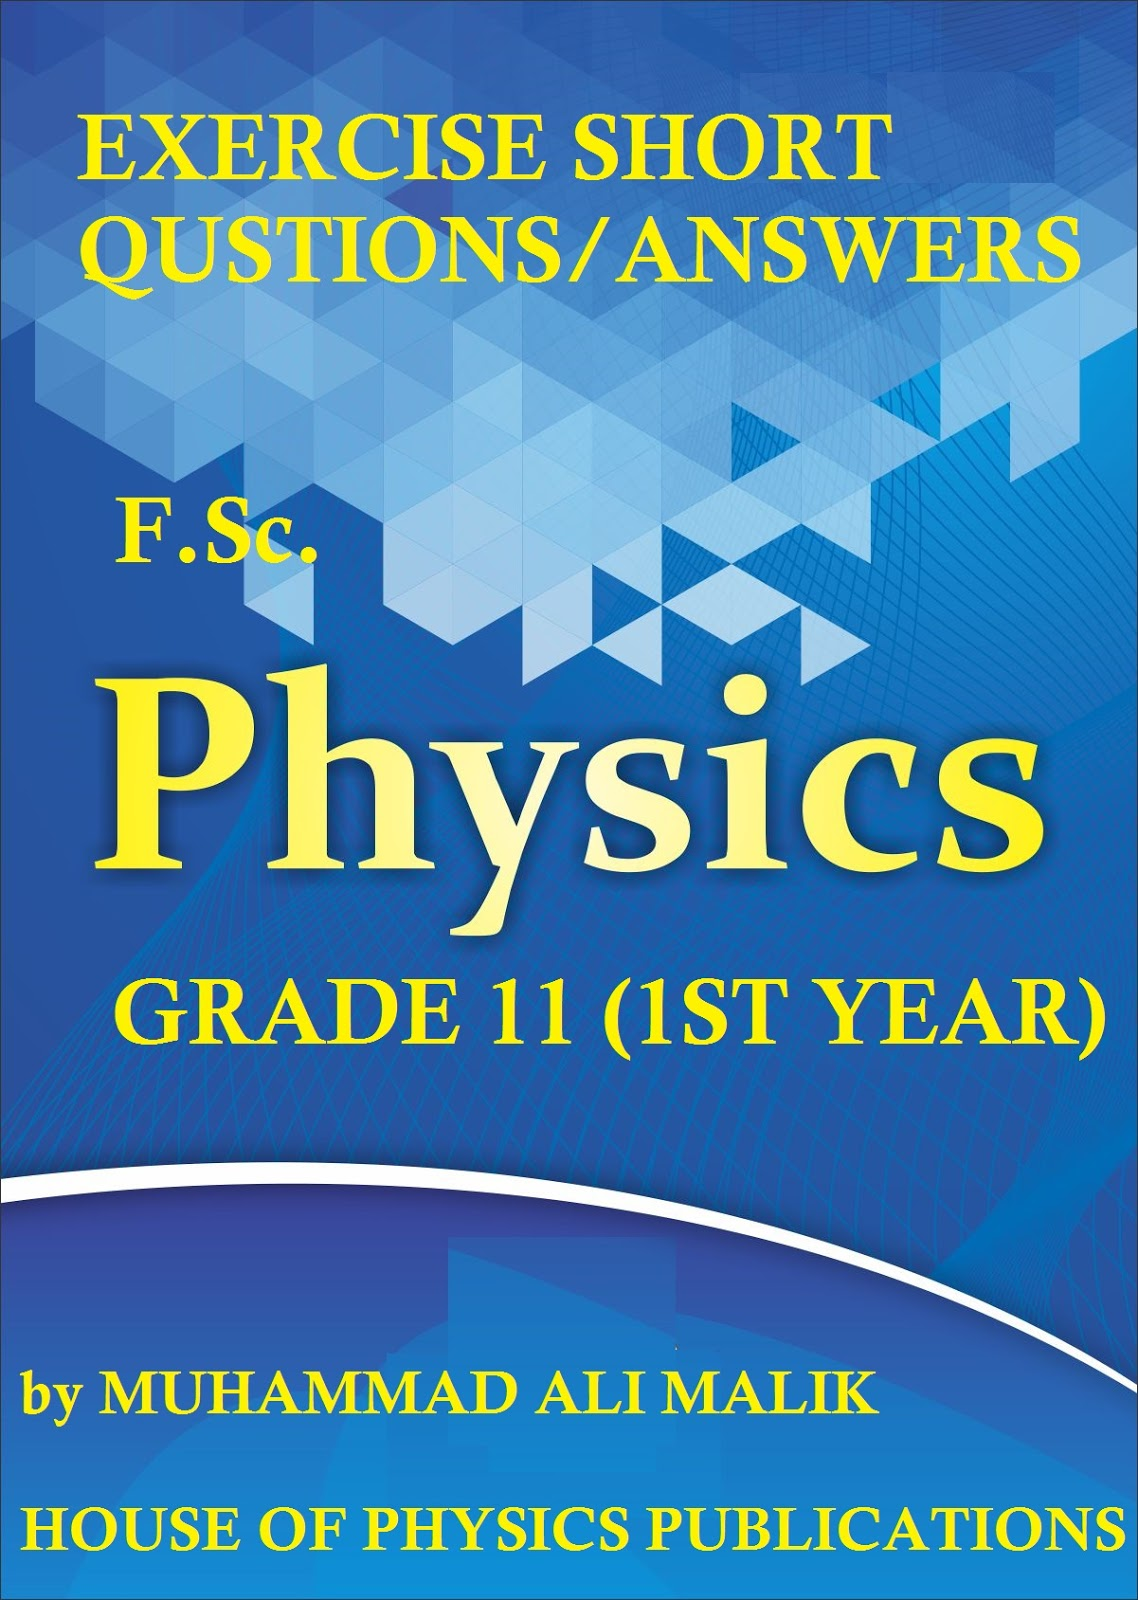 Exercise Short Questions, F Sc  Physics (1st Year), FREE